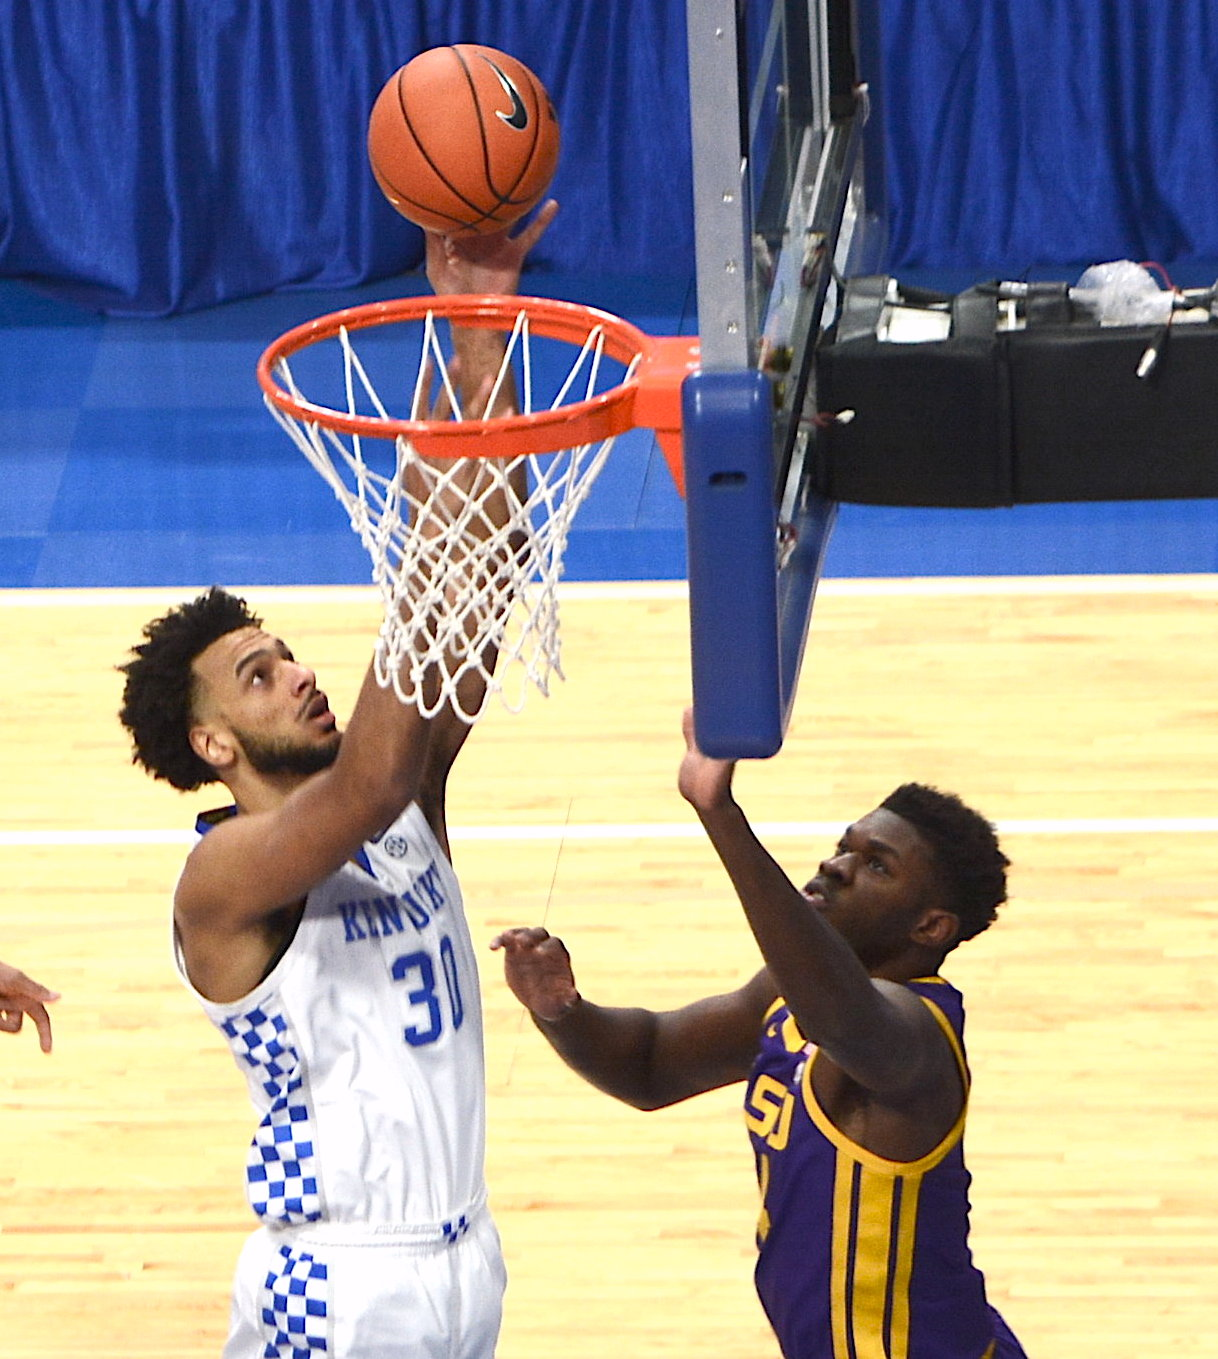 UK gets back on track, rolls to 82-69 victory over LSU on Saturday night to end three-game losing streak